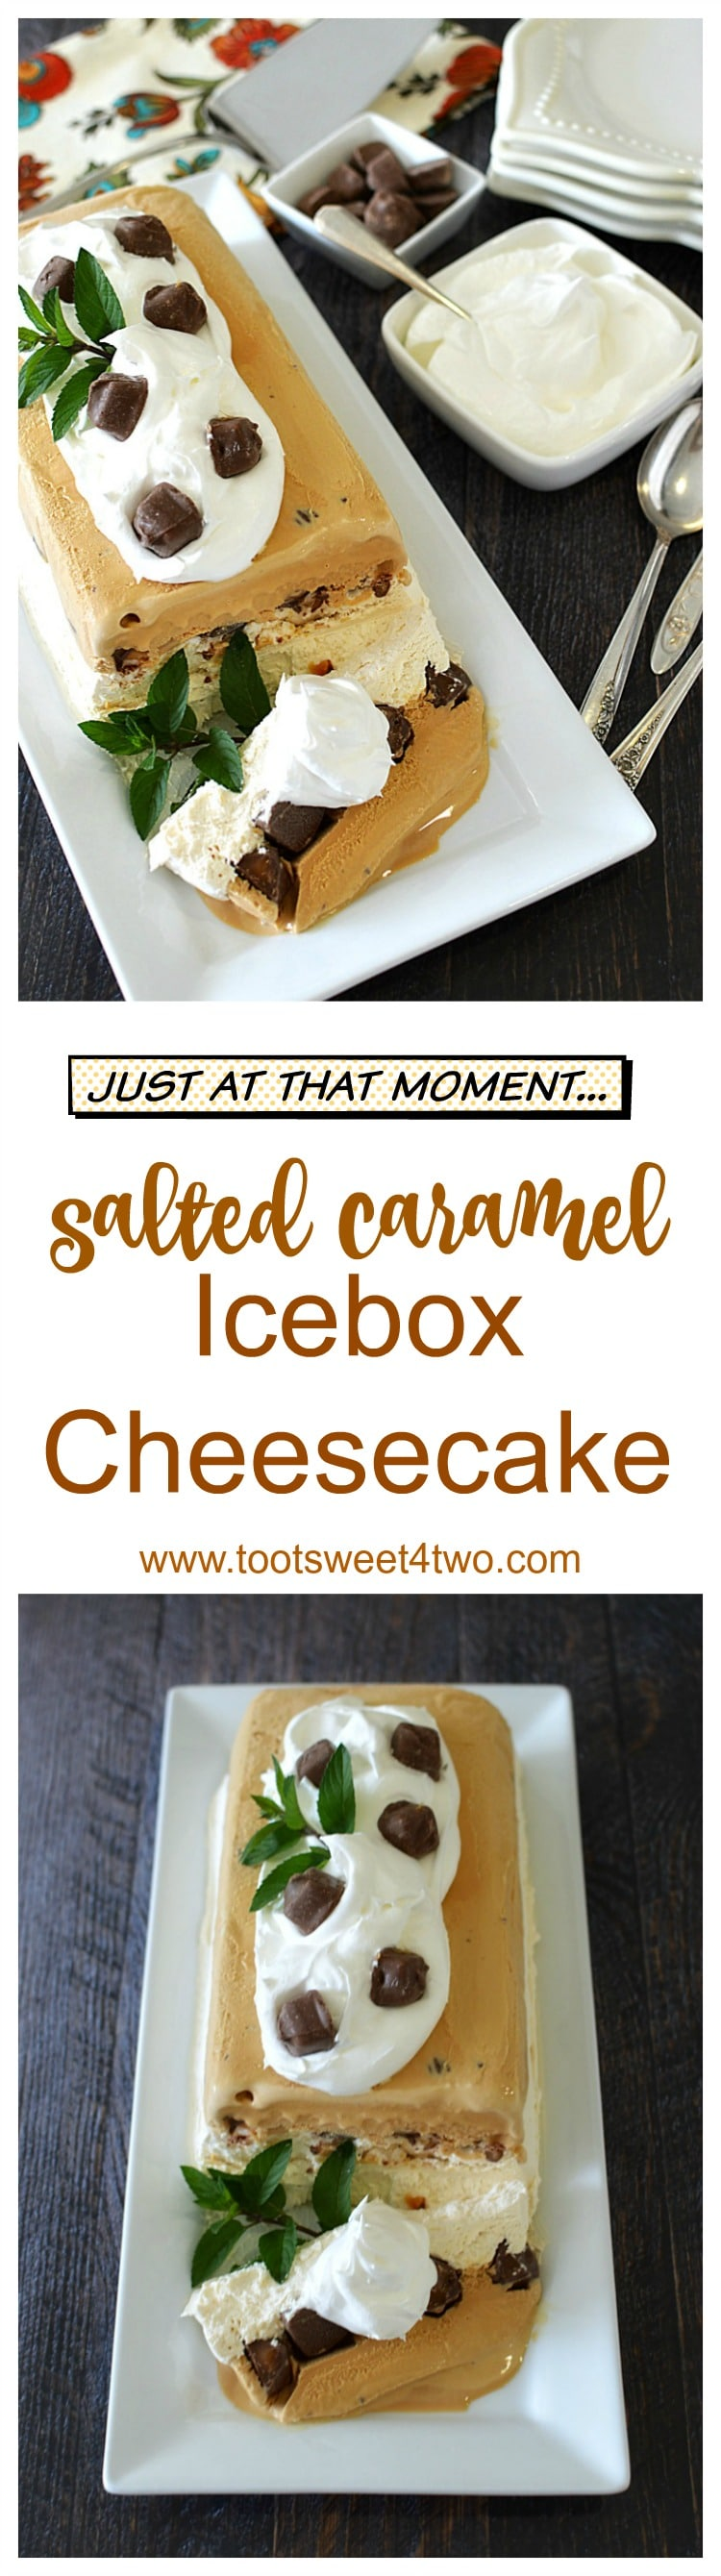 "Looking for unique cheesecake recipes? Look no further! Salted Caramel Icebox Cheesecake is an easy, frozen, no bake dessert that combines an easy-to-make cheesecake layer topped with Milky Way Bites and then layered with salted caramel gelato. Frozen for hours or overnight, unmold this luscious concoction onto a pretty platter and then top with dollops of Cool Whip and more candy. A spectacular-looking dessert, this delicious recipe will ""wow"" friends and family. 